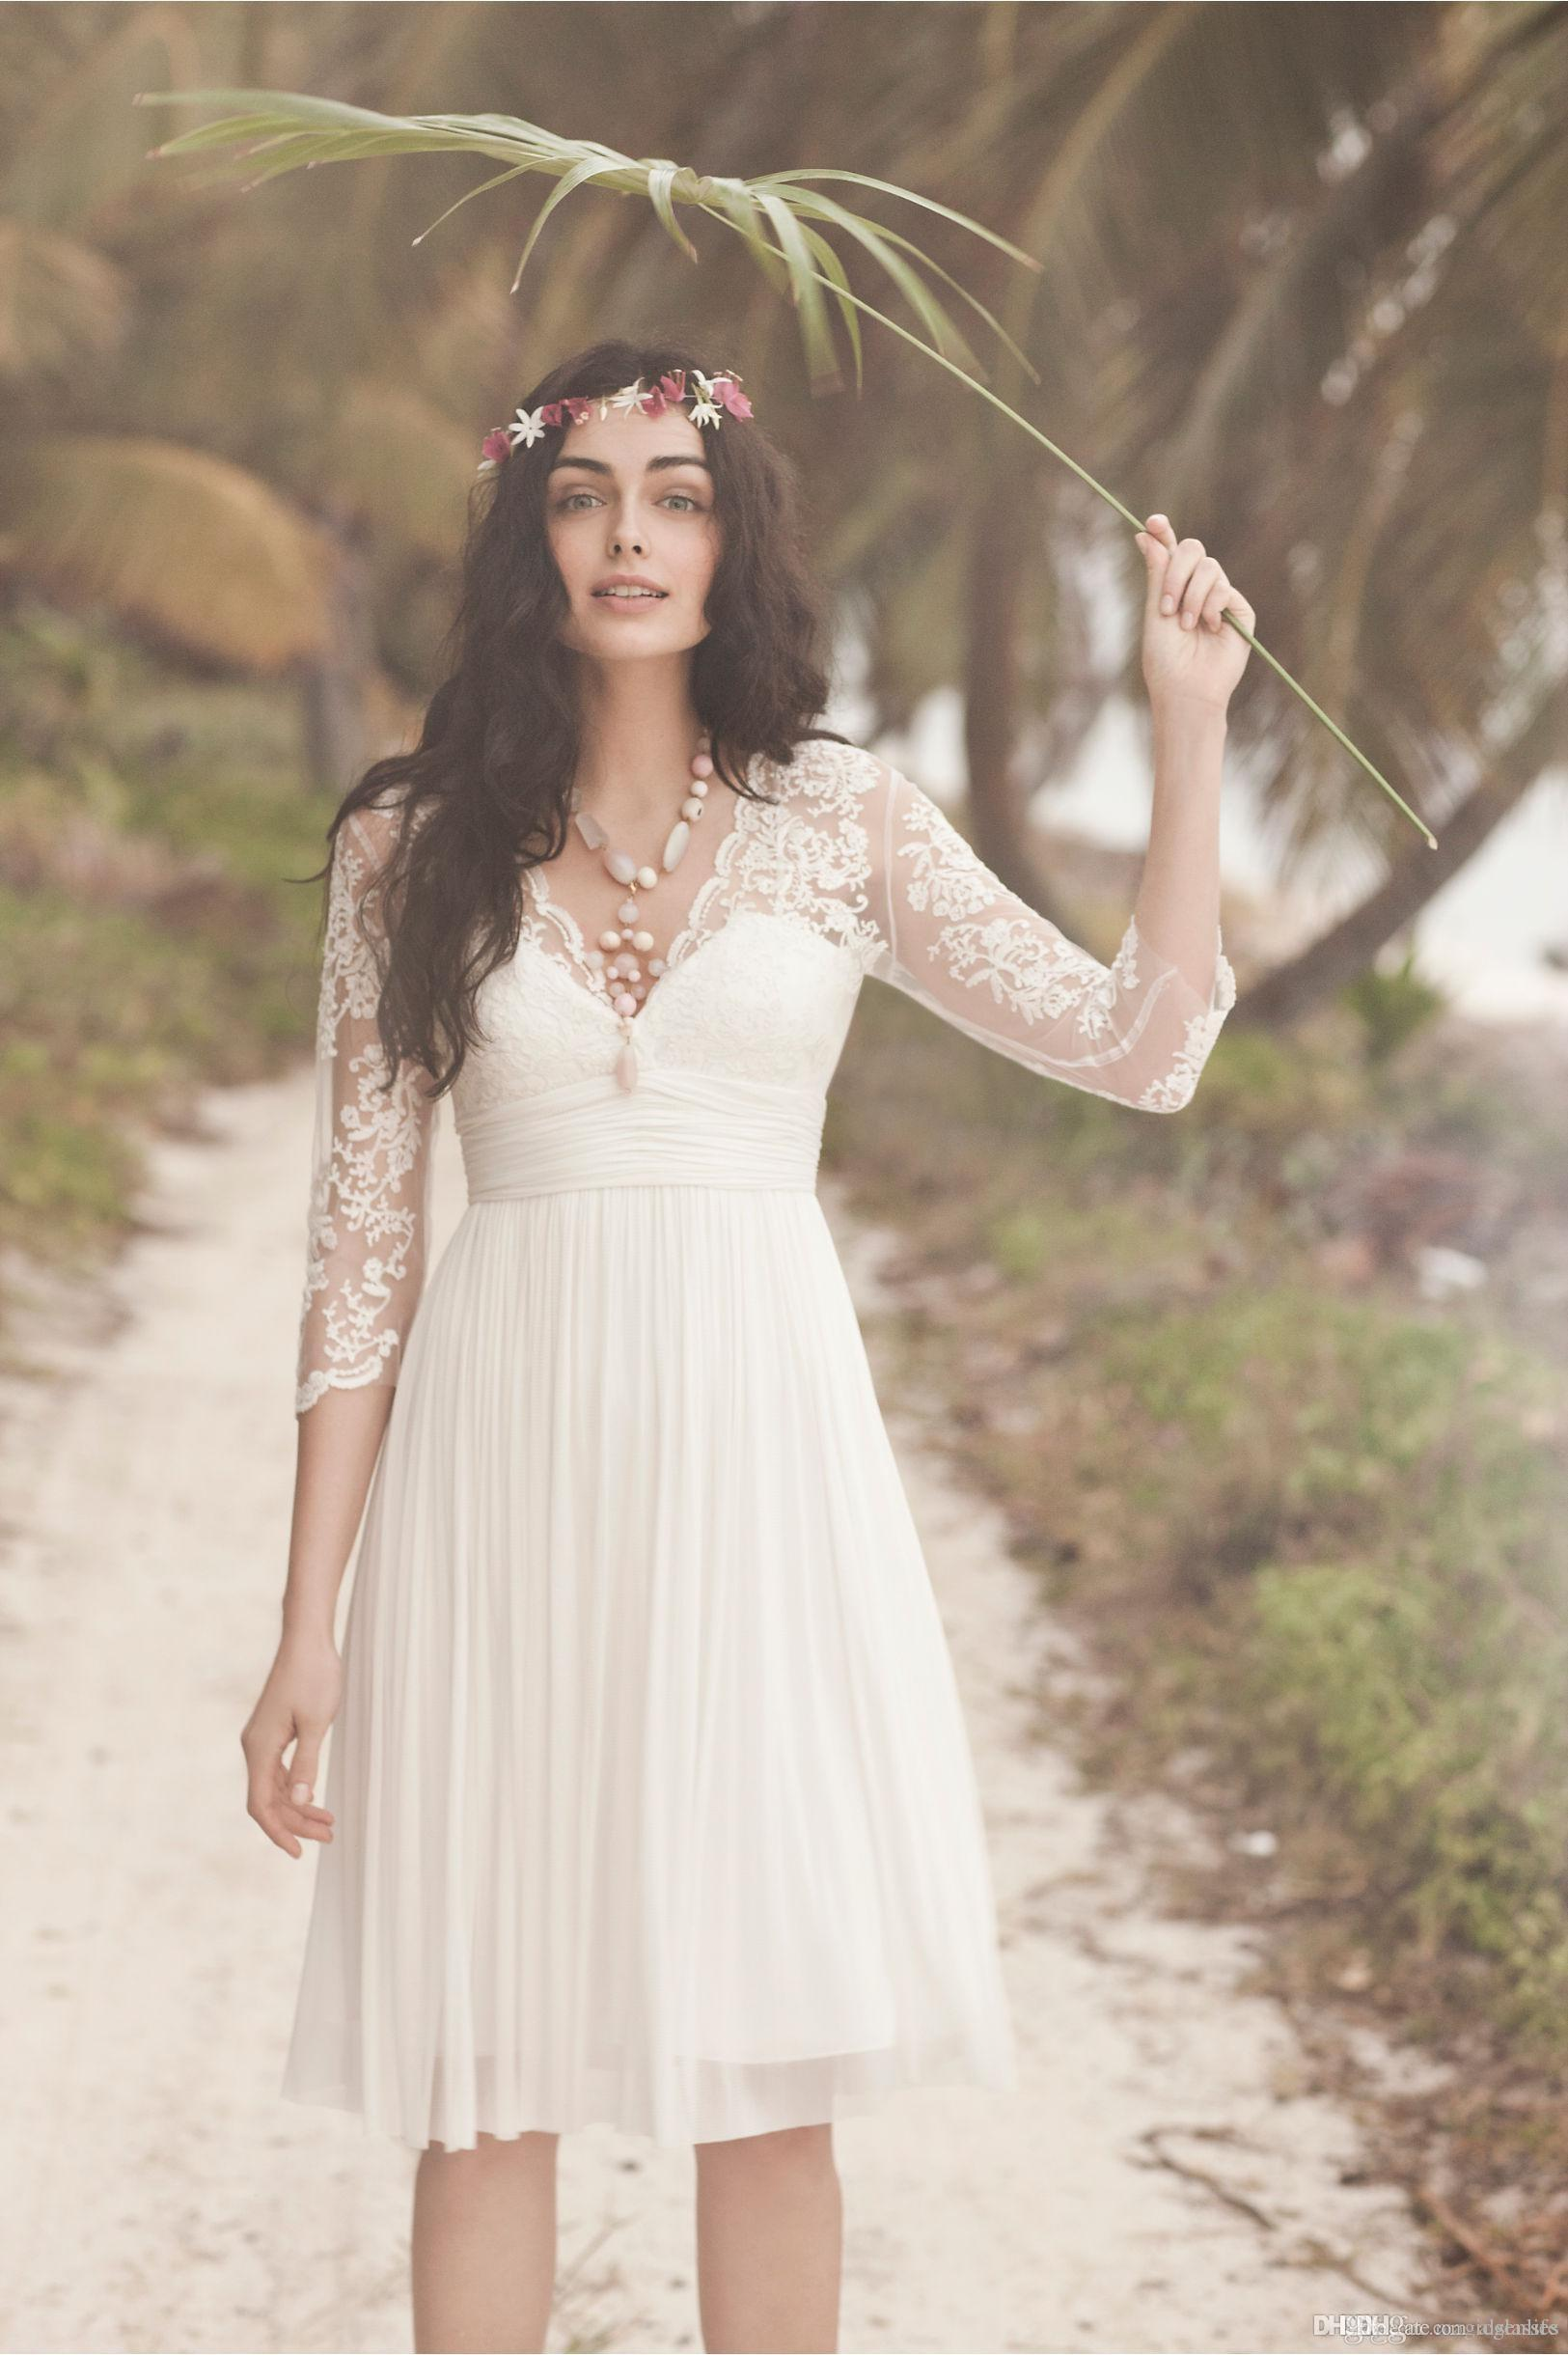 Boho Short Lace Wedding Dresses with Ivory Sheer 3/4 Long Sleeves 2017 V Neck Pleated A-Line Knee Length Chiffon Beach Bridal Gowns